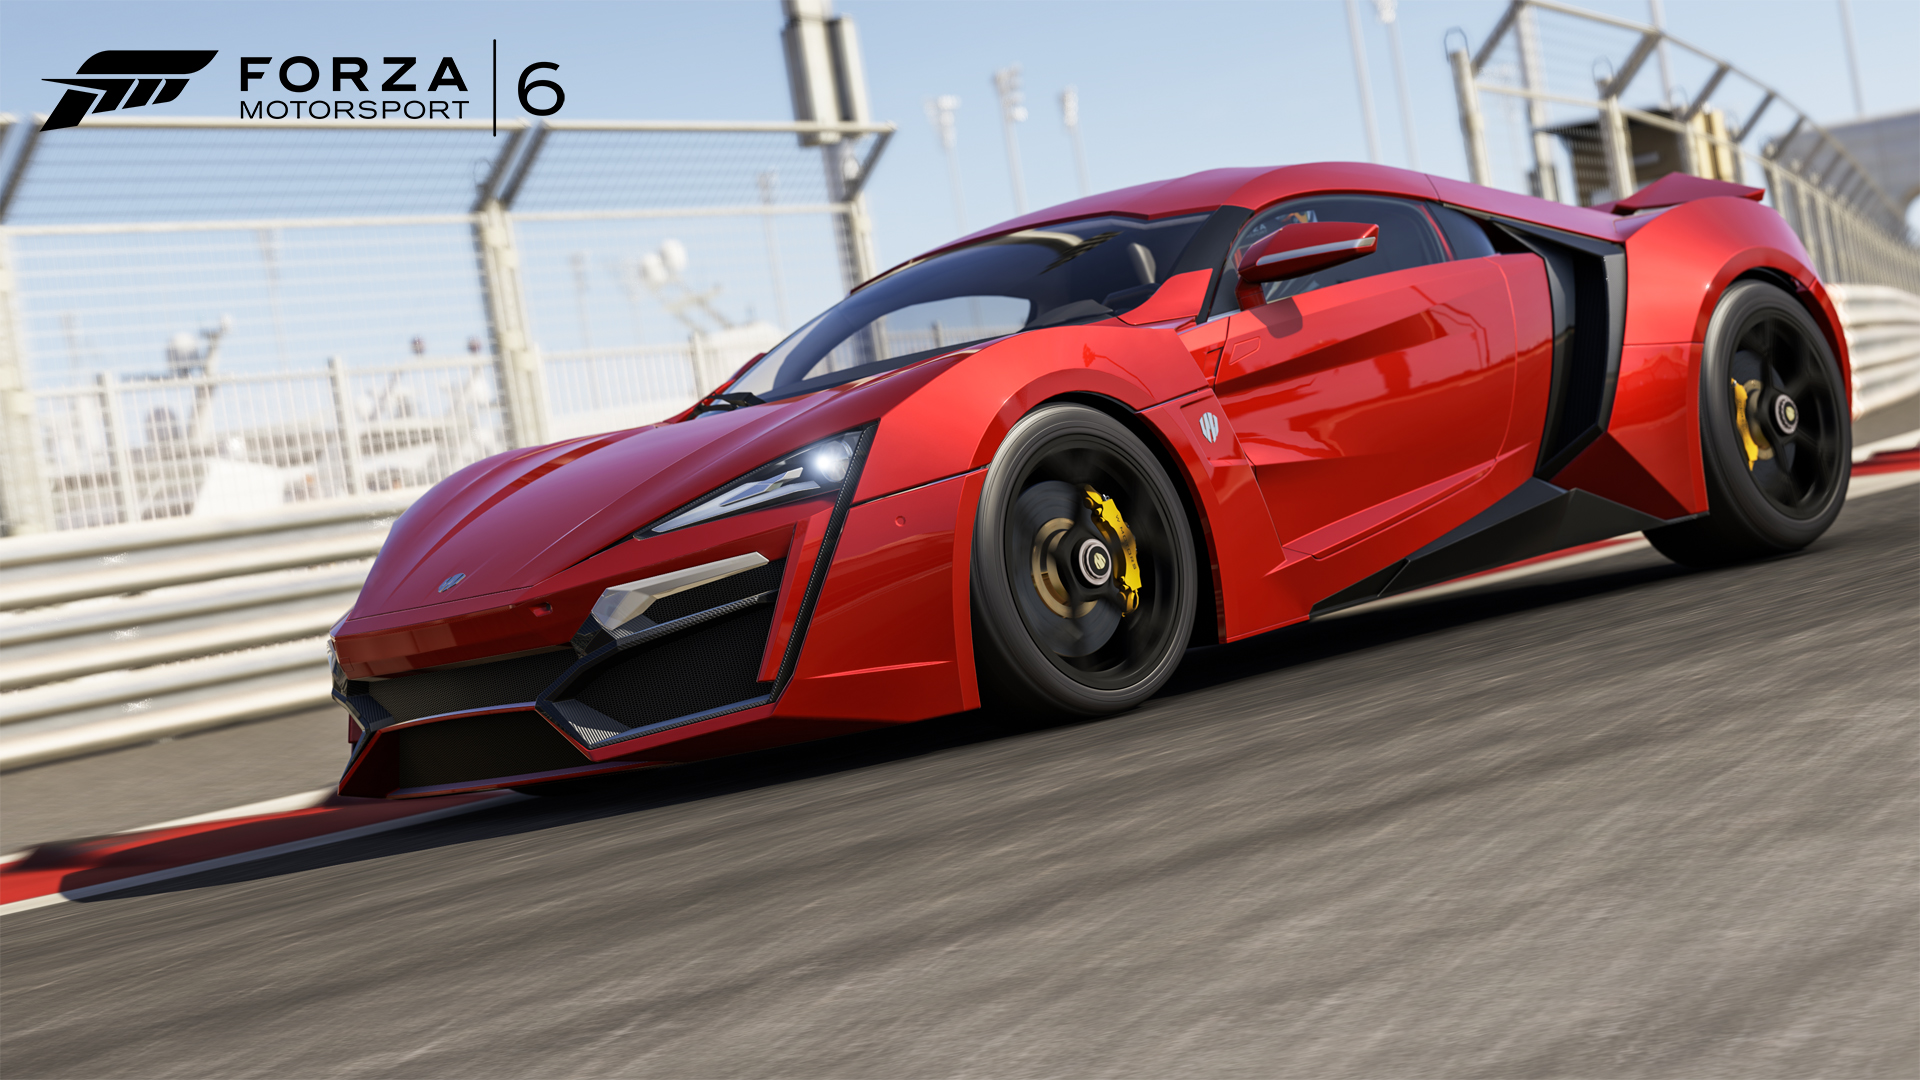 JanDLC_WM_LykanHyperSport_16_Forza6_WM